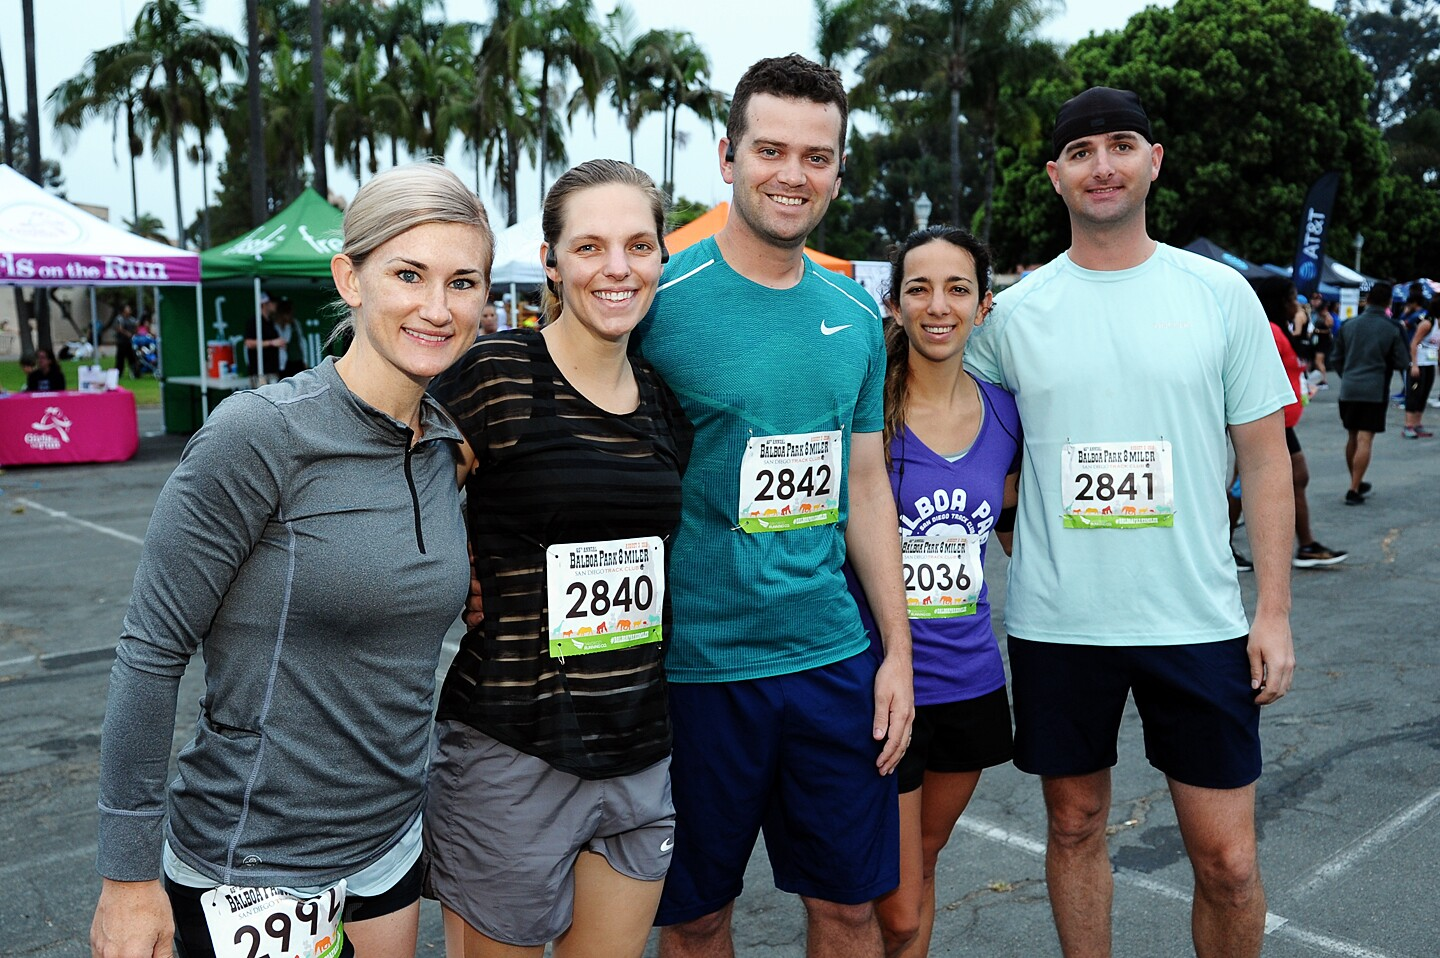 """Runners of """"San Diego's longest running tradition"""" enjoyed the scenic trails as they raced at the 65th Annual Balboa Park 8 Miler on Saturday, August 3, 2019."""